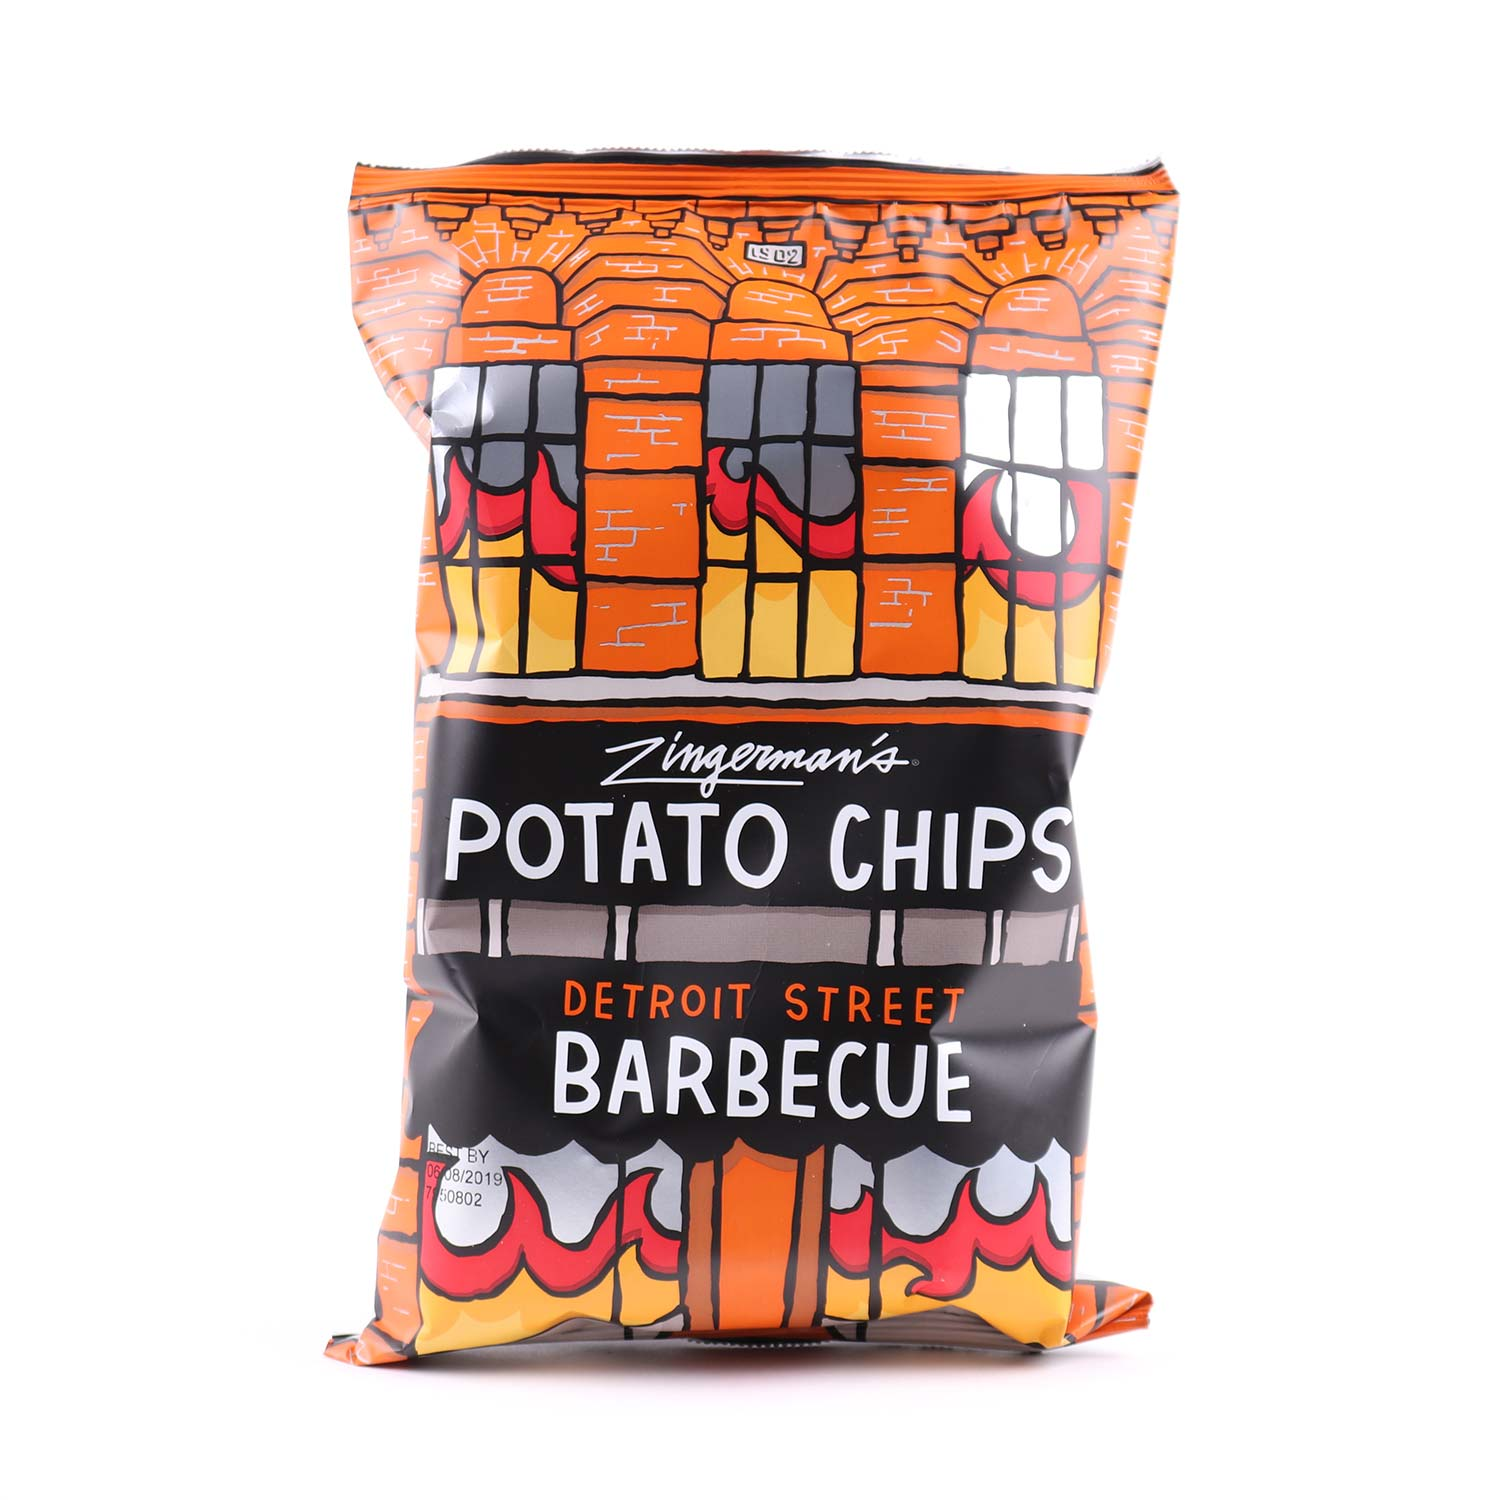 Potato Chips, Detriot Street Barbecue